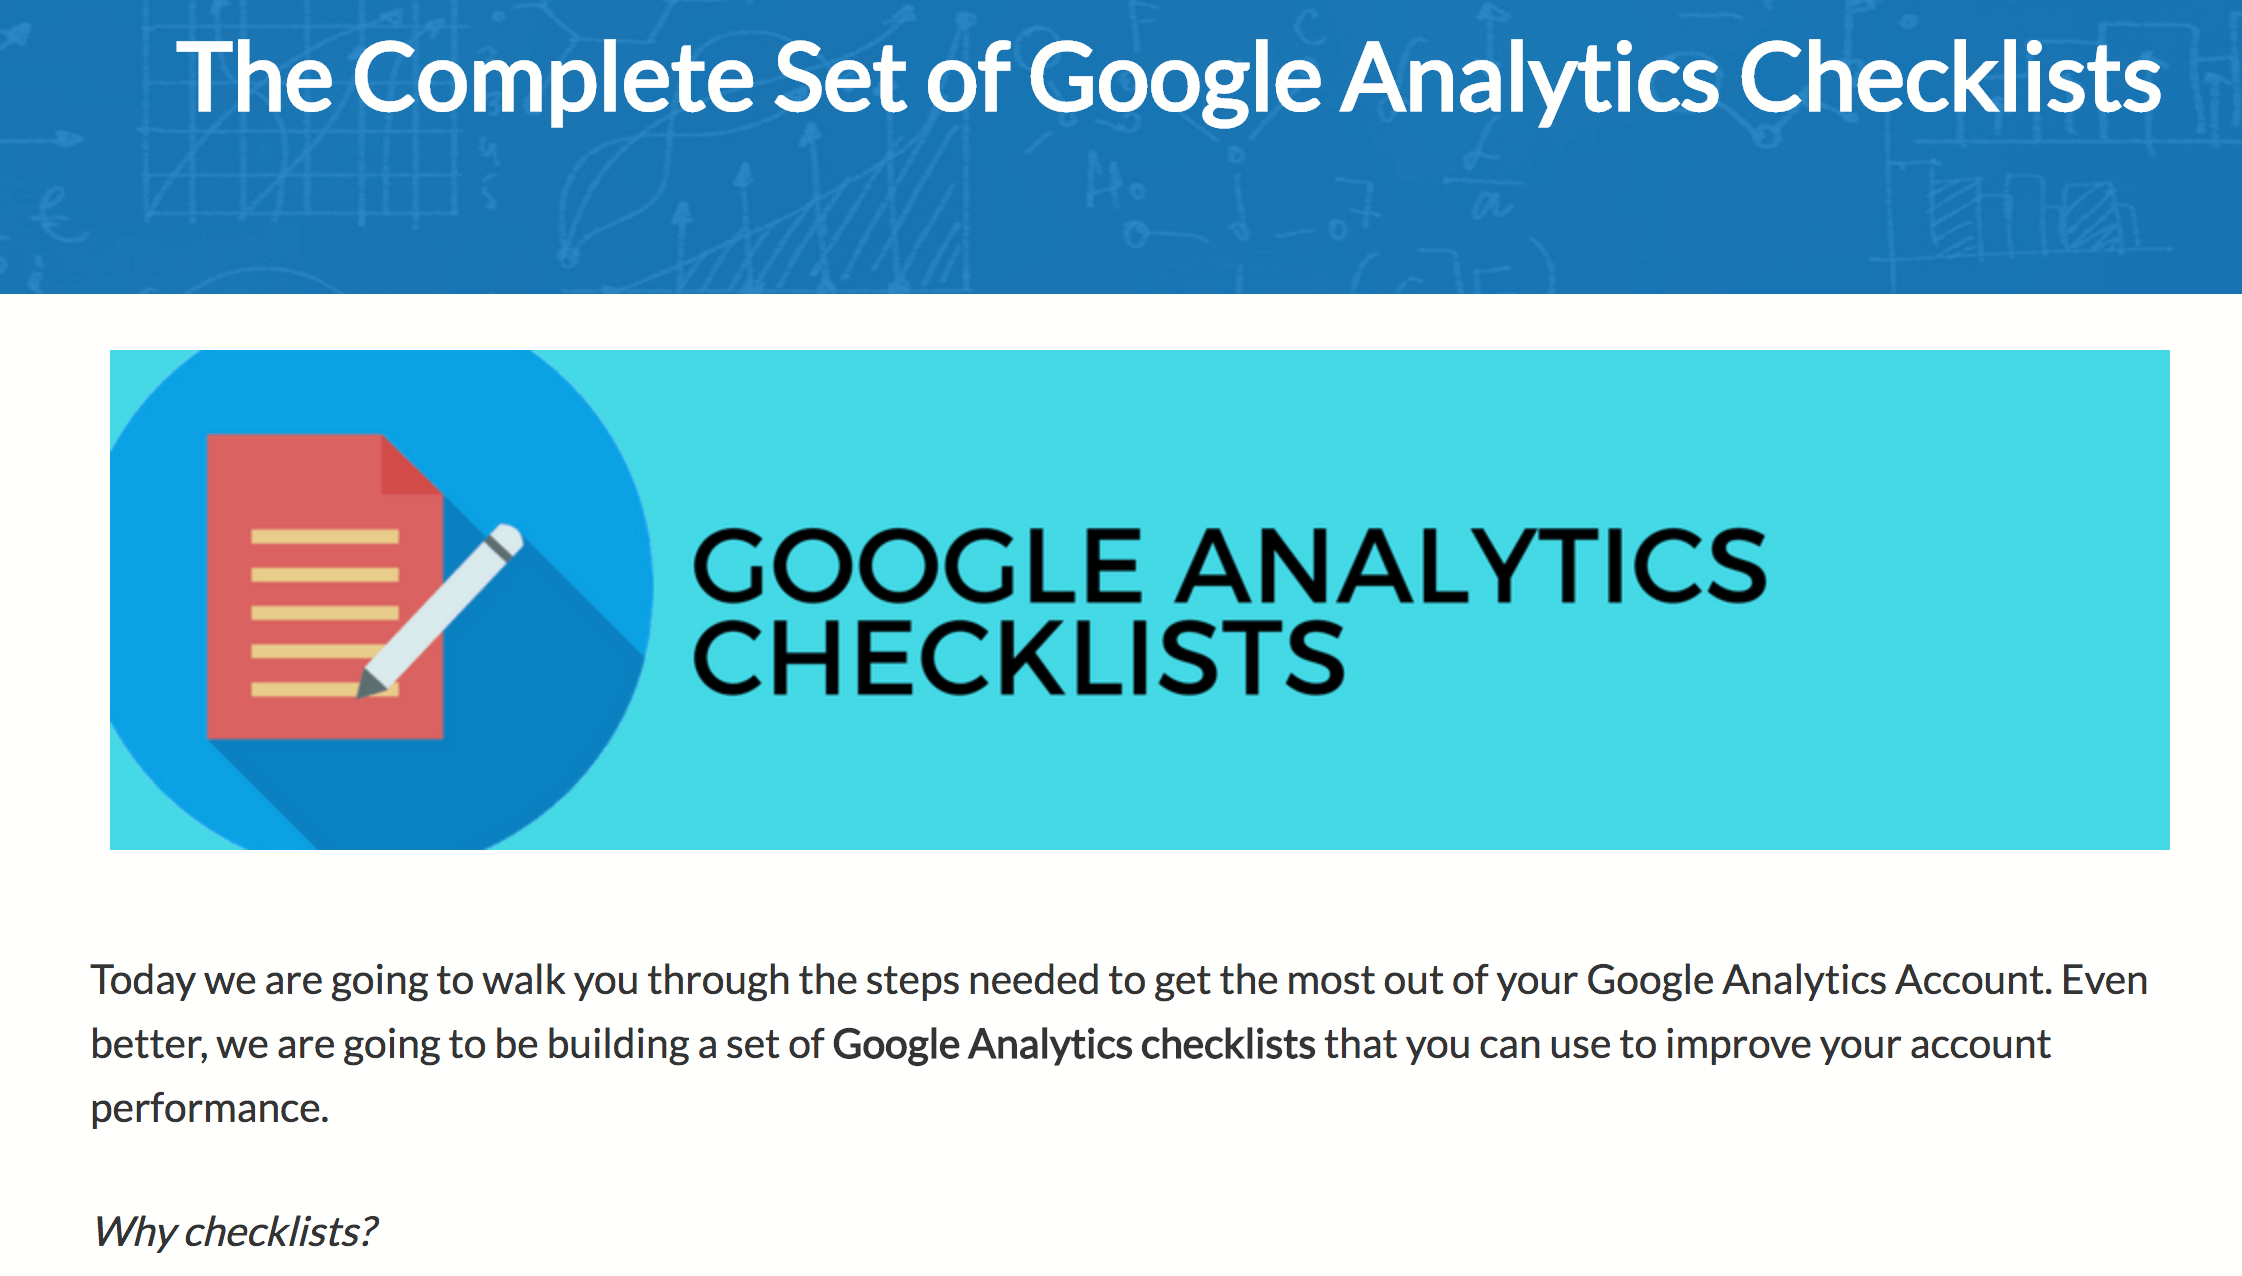 Google Analytics checklists